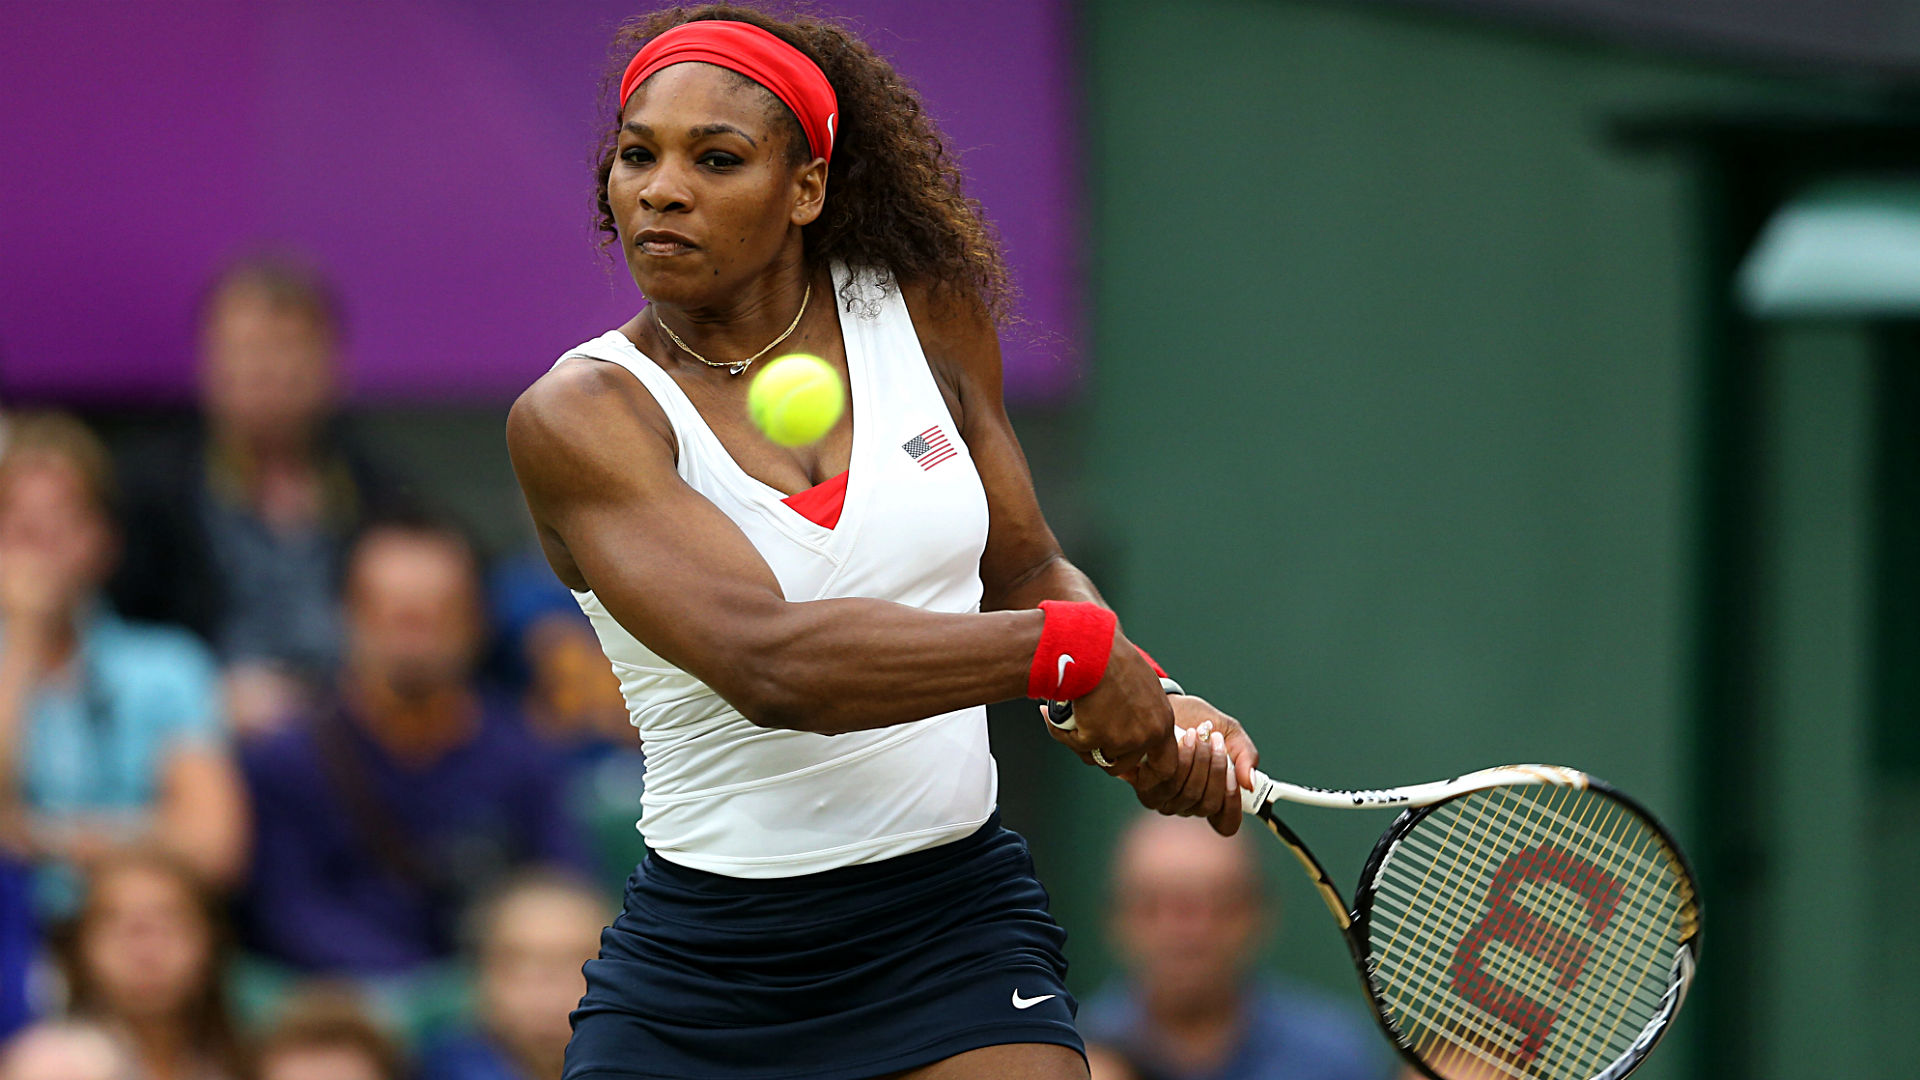 Serena Williams makes quick work of first round opponent